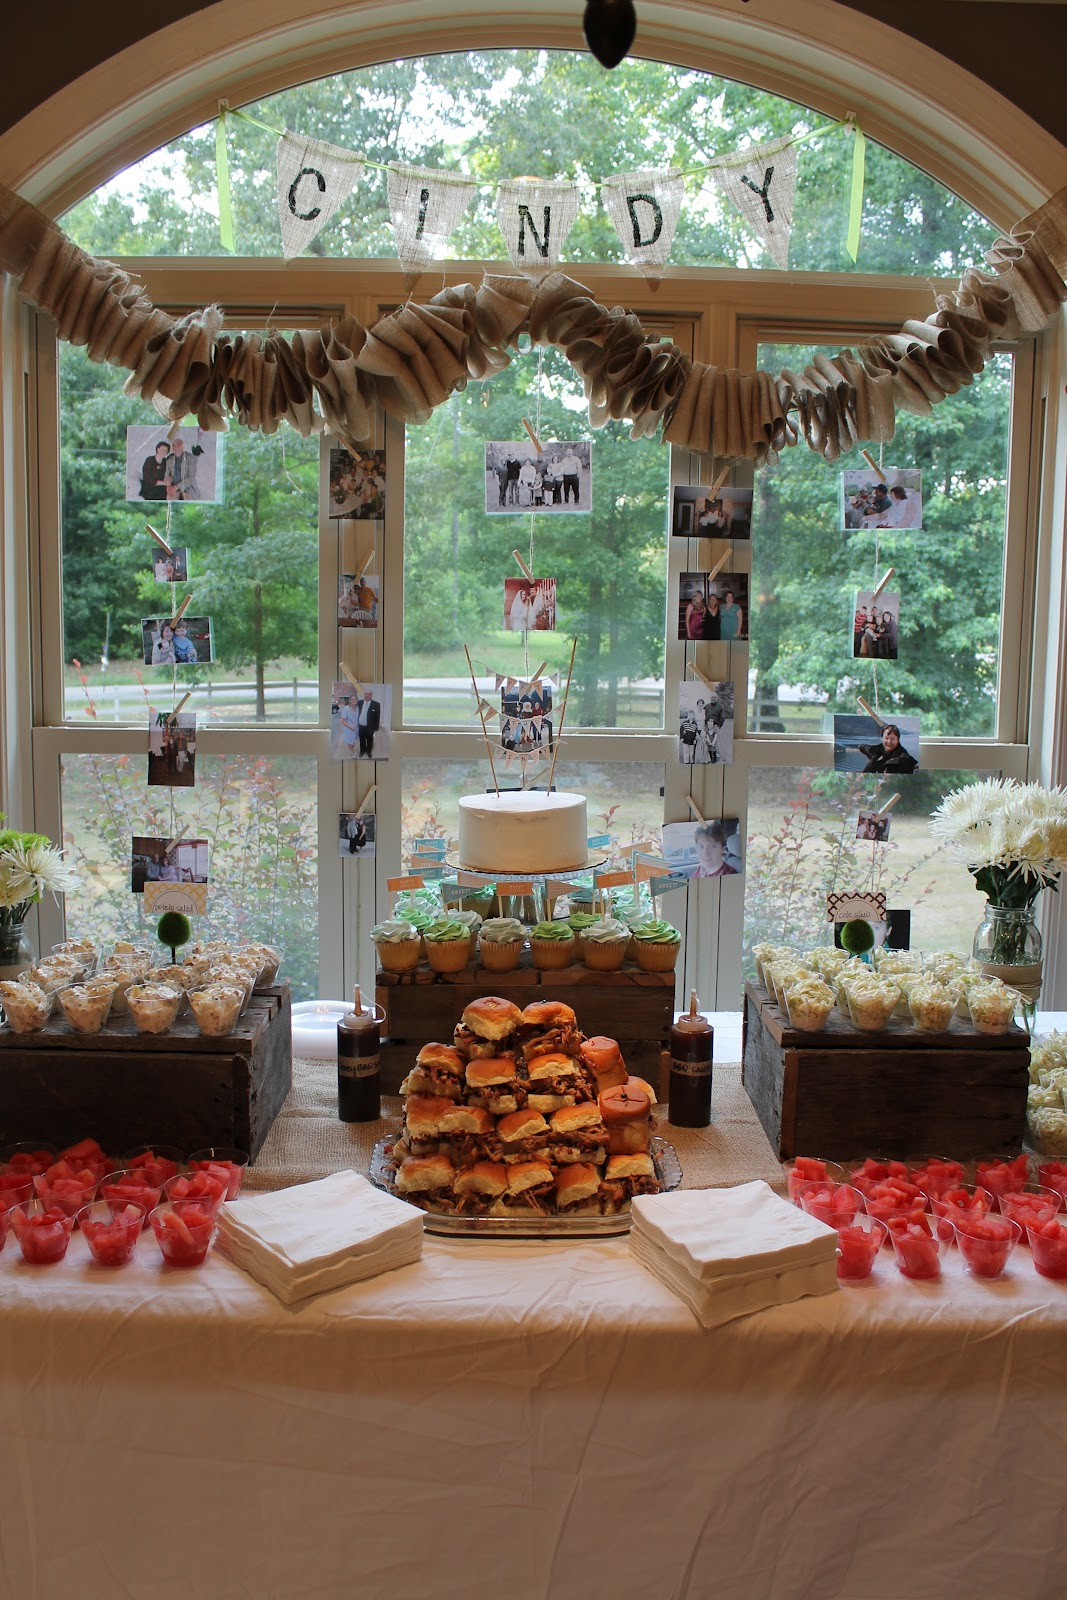 barbeque and burlap {a surprise 50th birthday party} - Life in the Green House